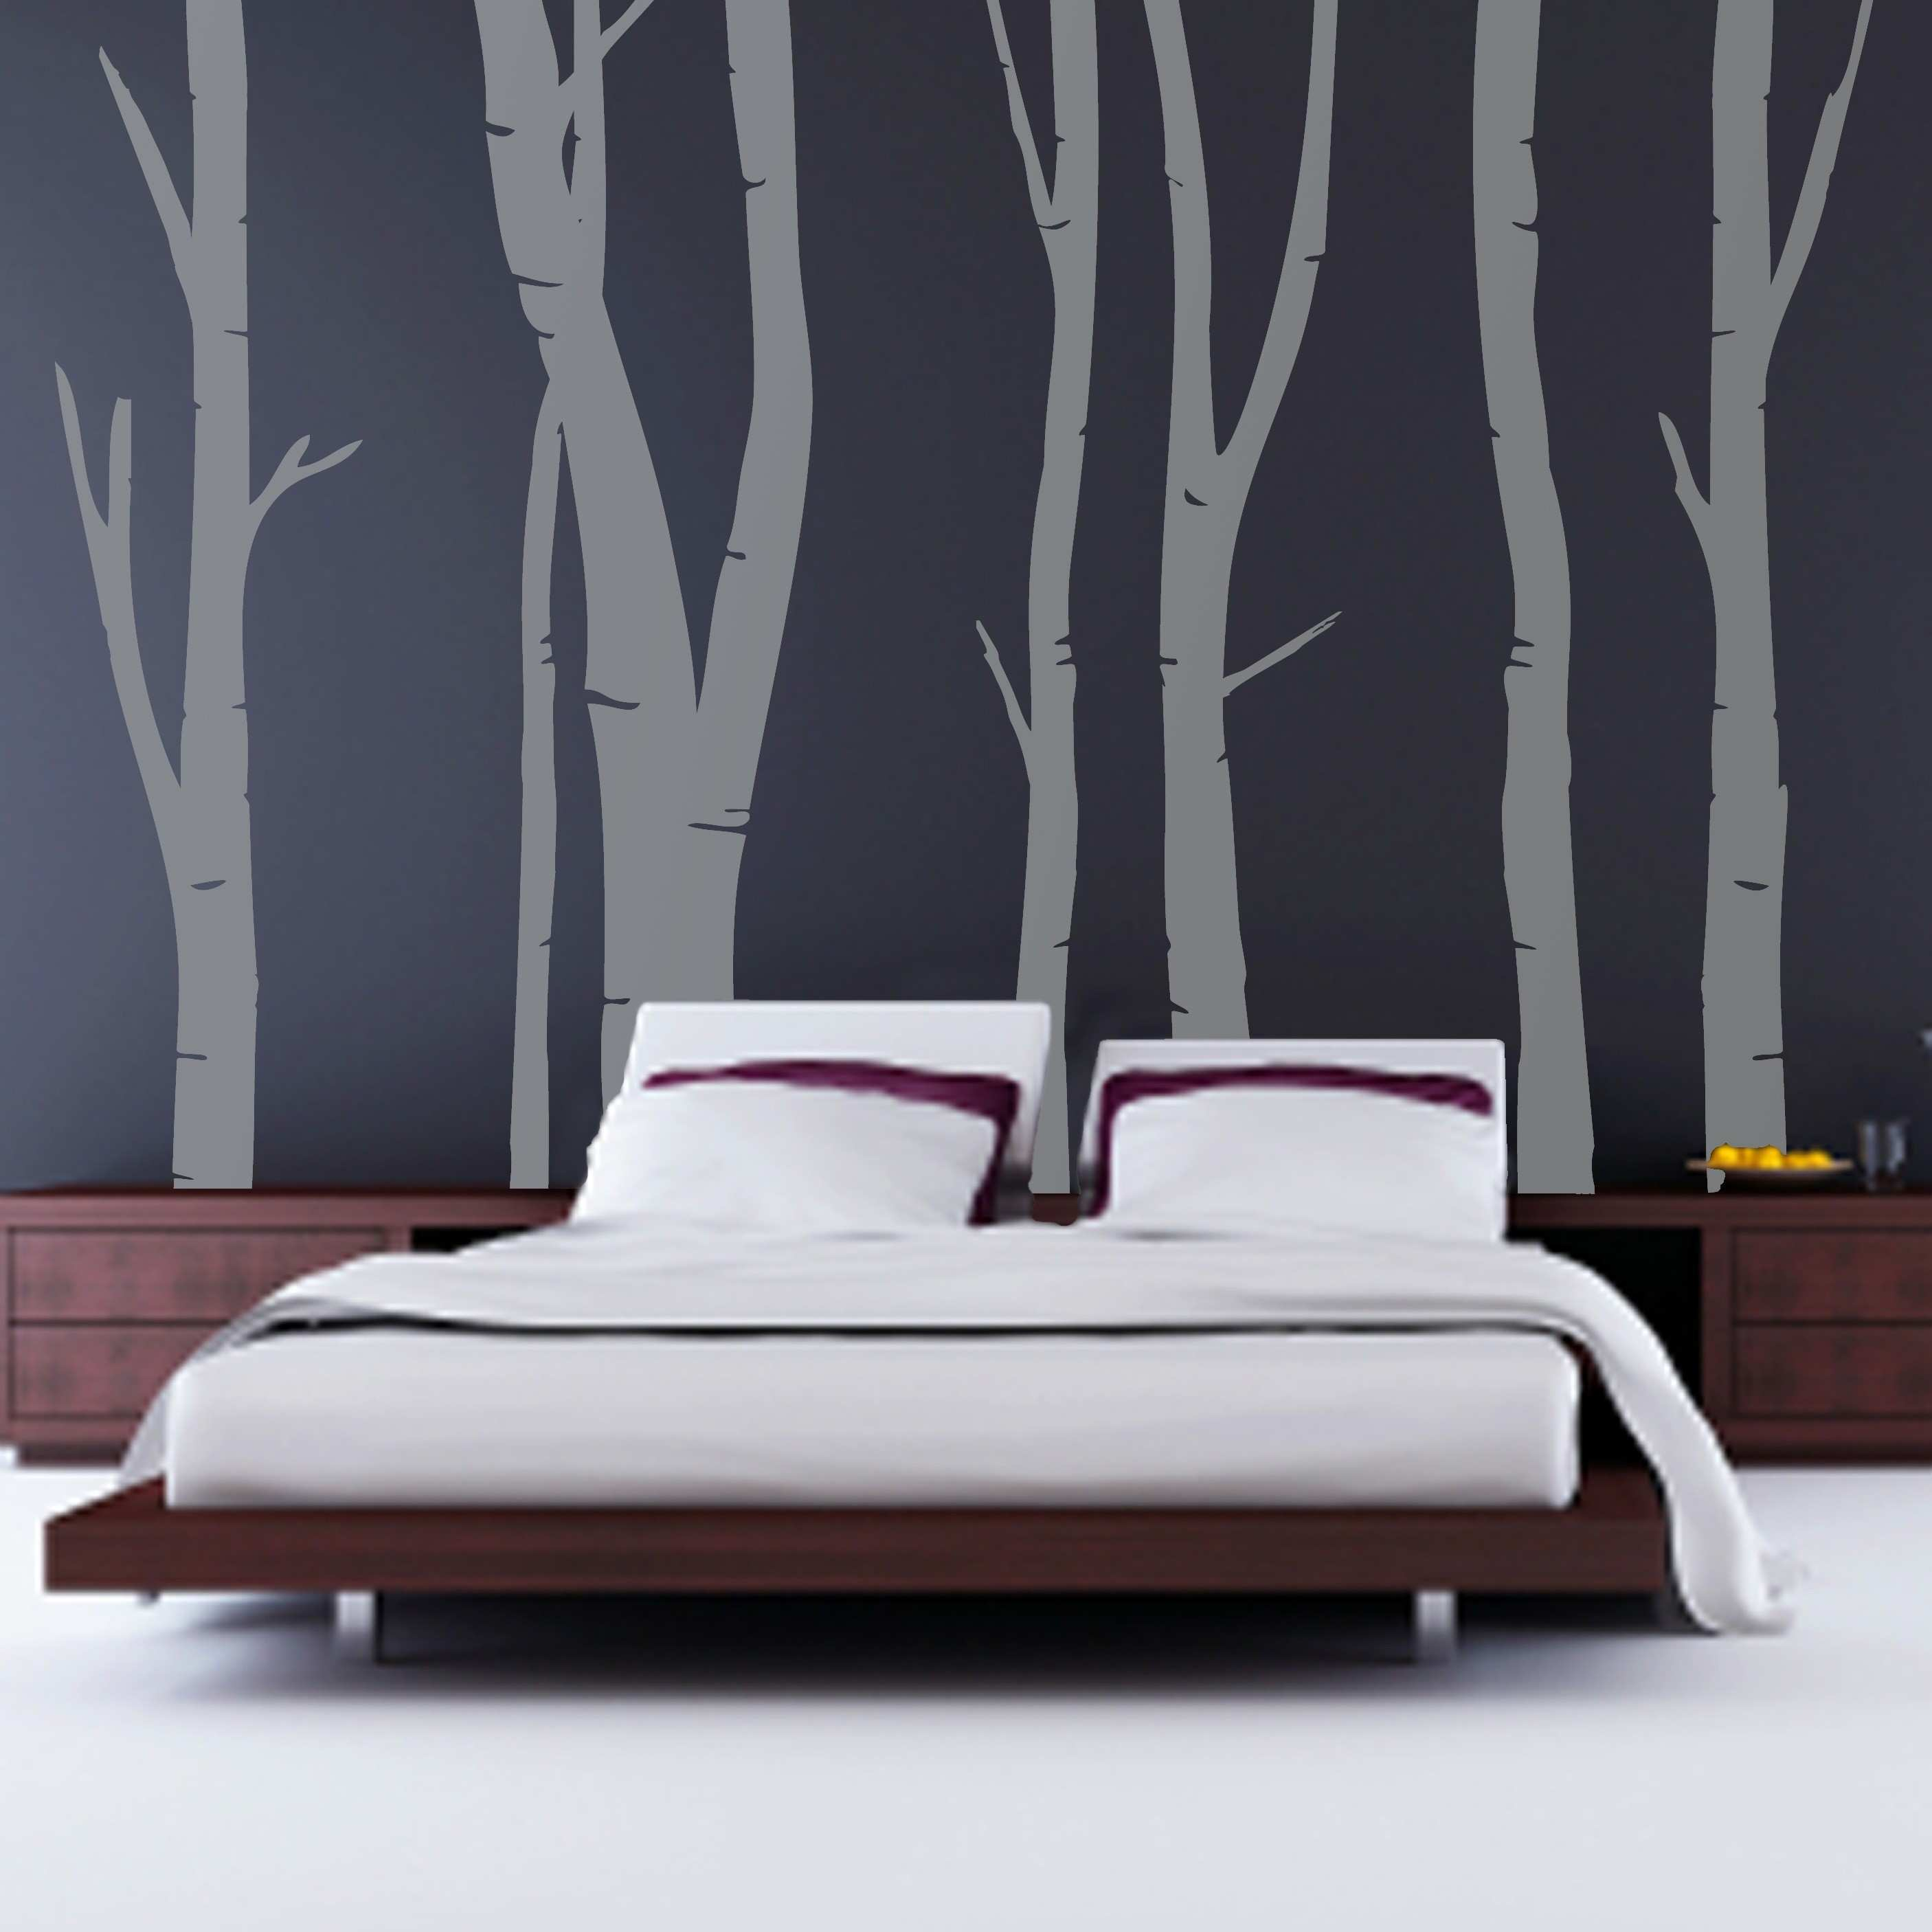 Peacock Home Decor Ideas Inspirational Wall Decals for Bedroom